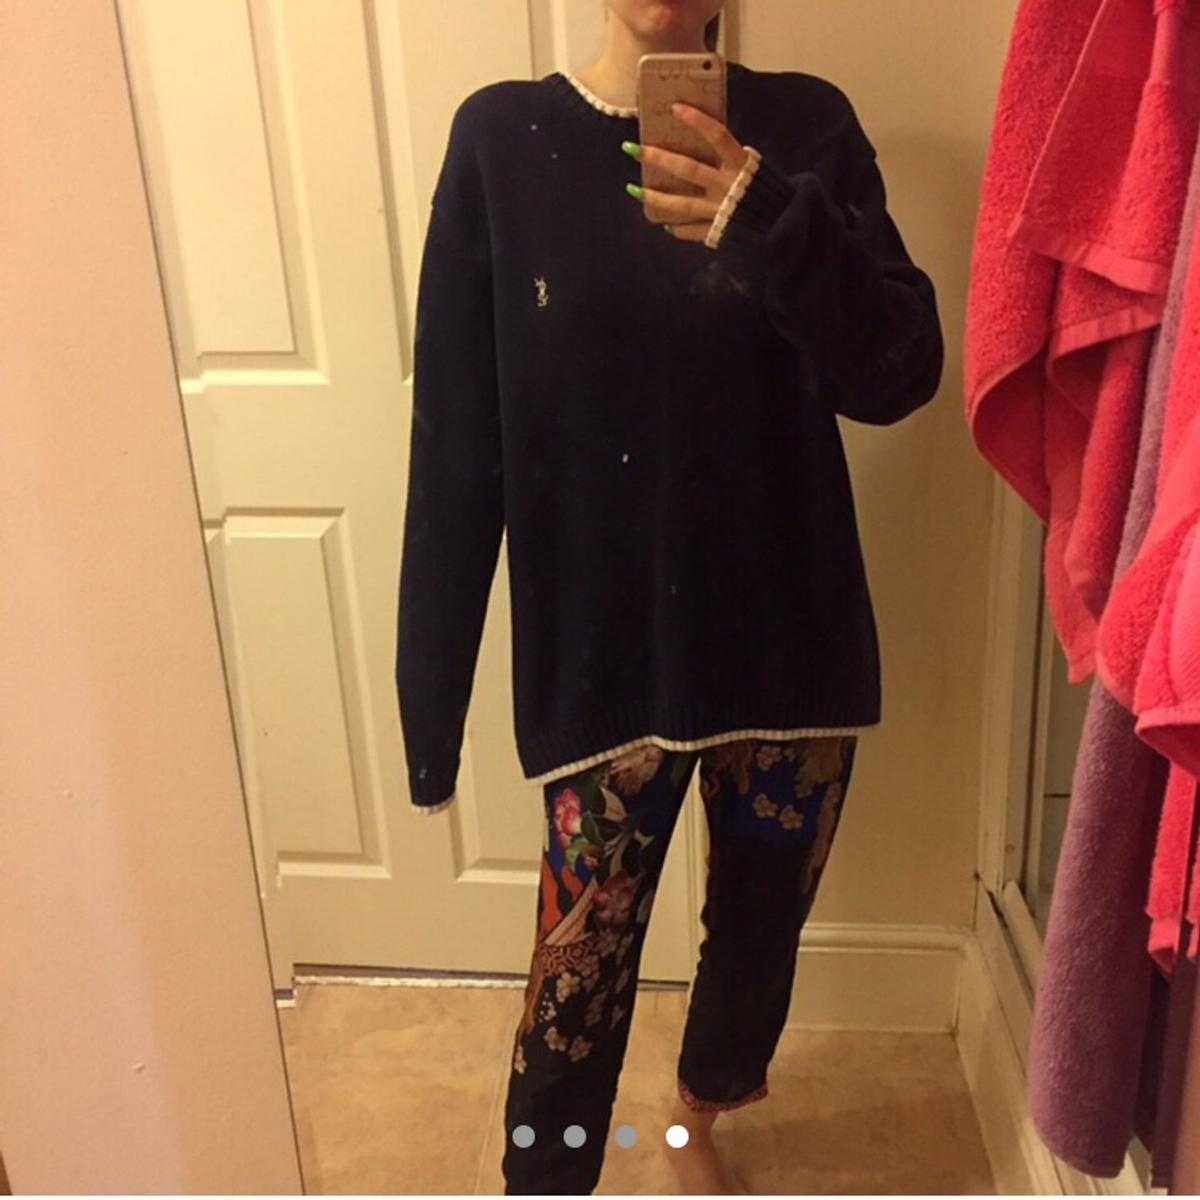 f0dc7f352 Yves Saint Laurent YSL navy jumper gucci in M1 Manchester for £30.00 for  sale - Shpock